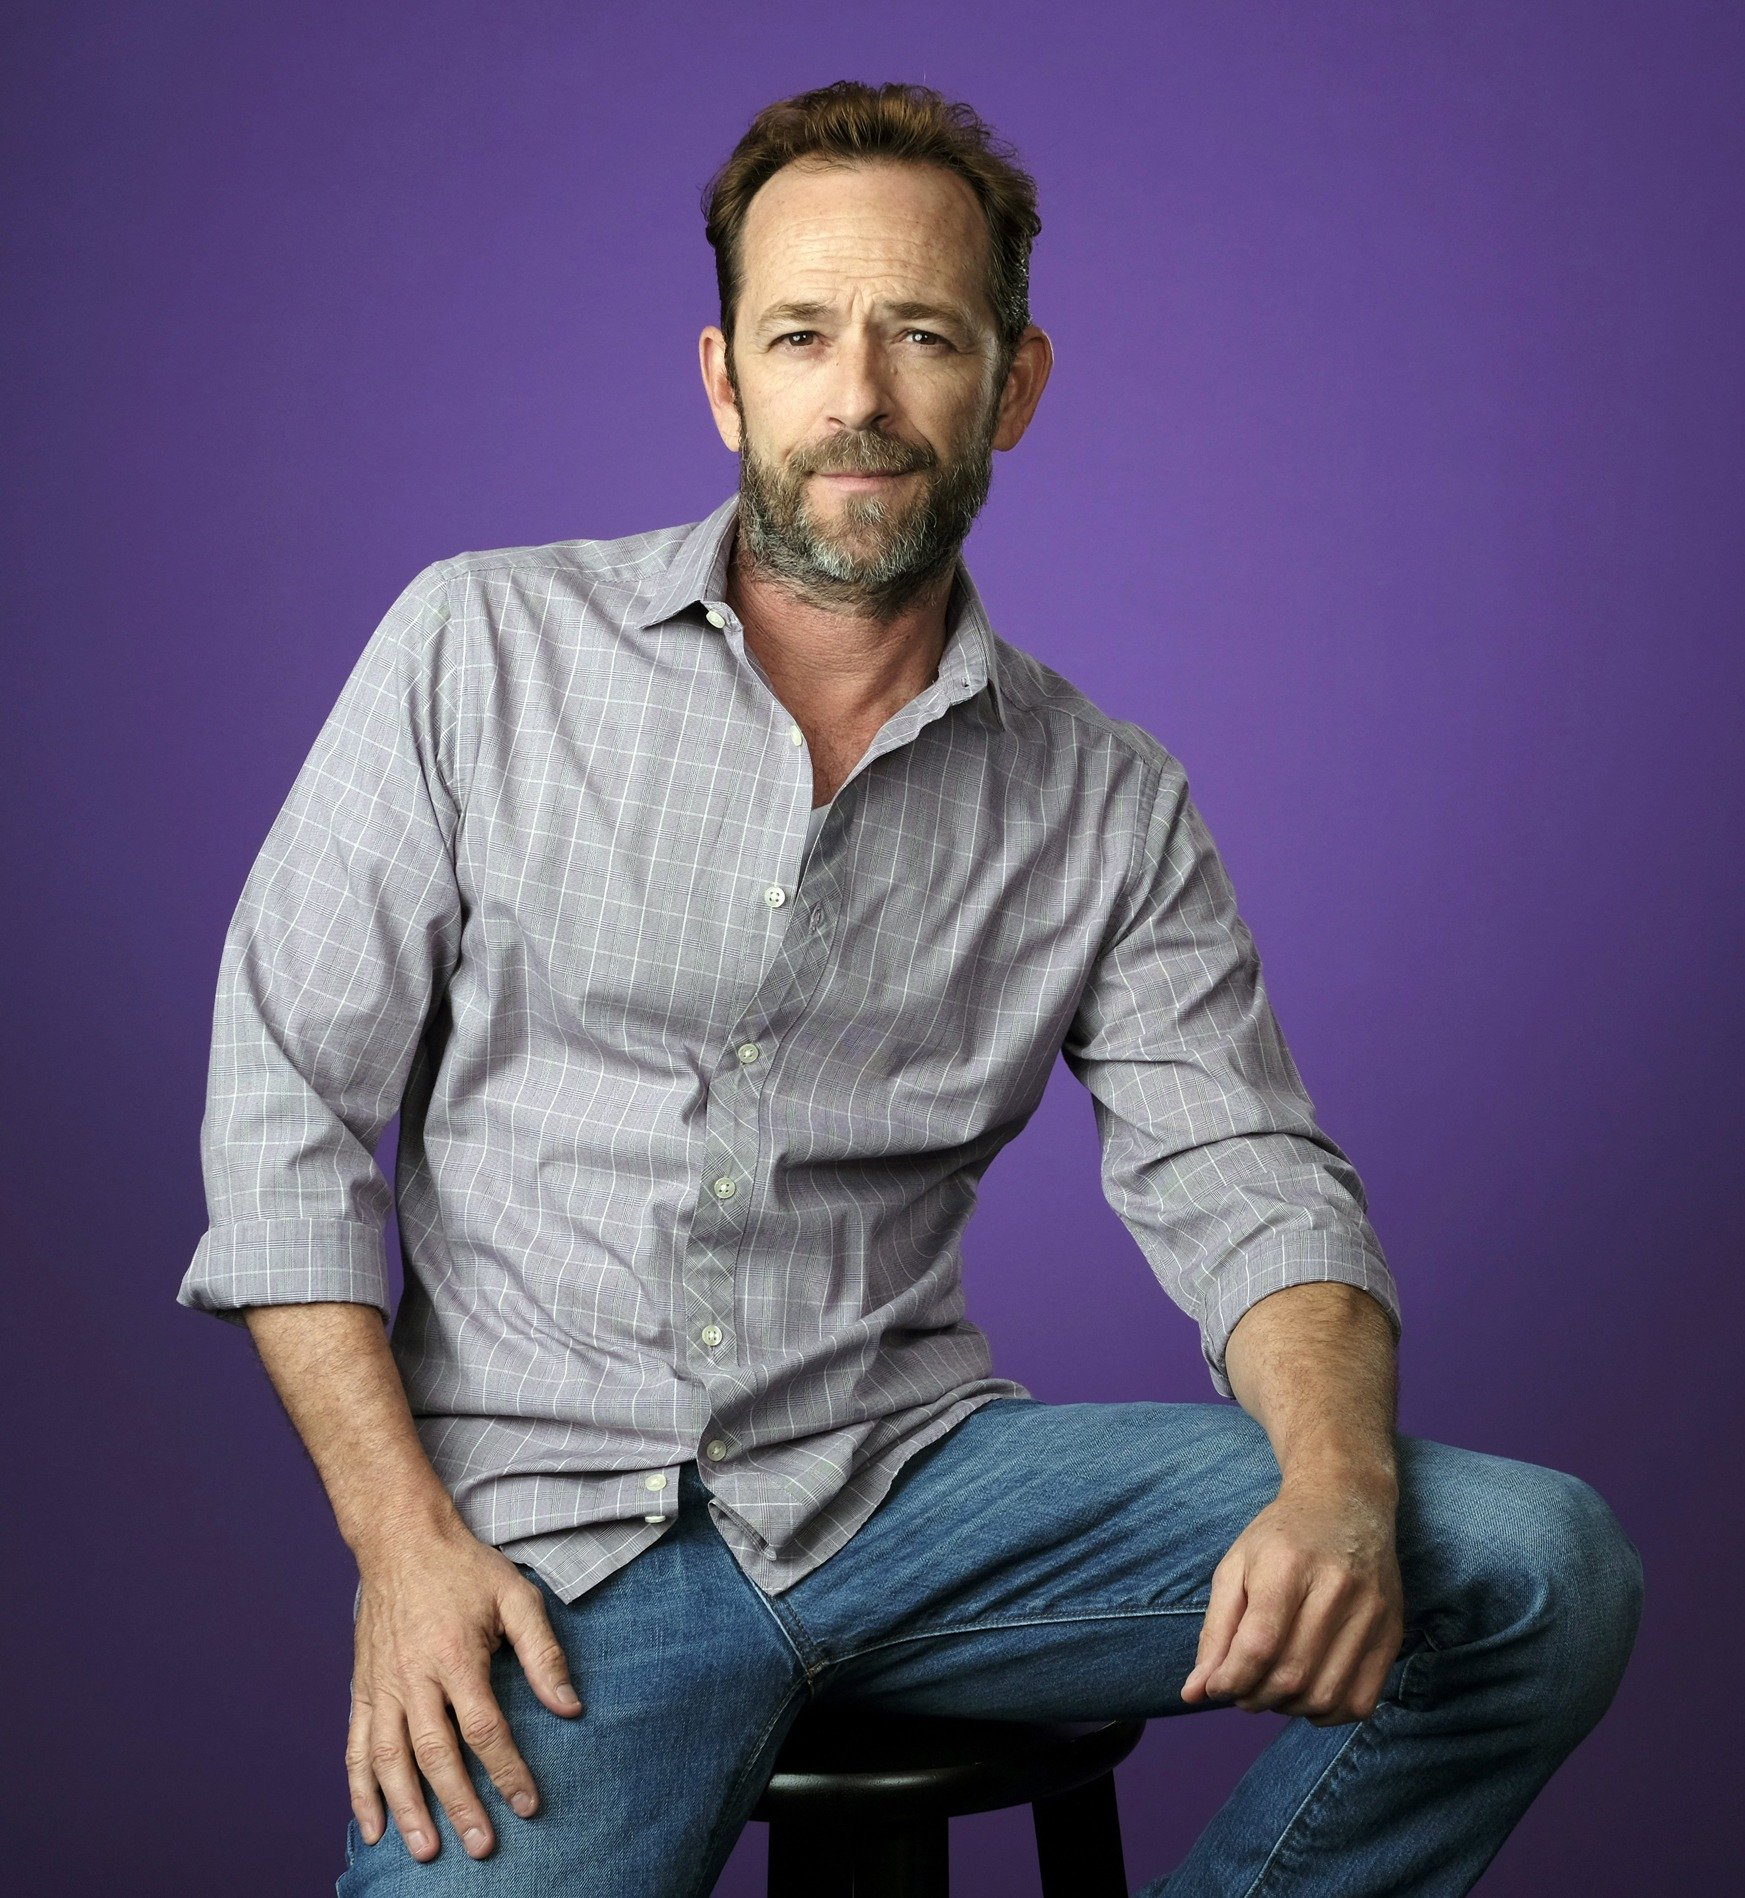 190304 luke perry mn 1245 835365a575e44b3818d75e4c9469341a Luke Perry's Final Riverdale Episode Will Air This Week